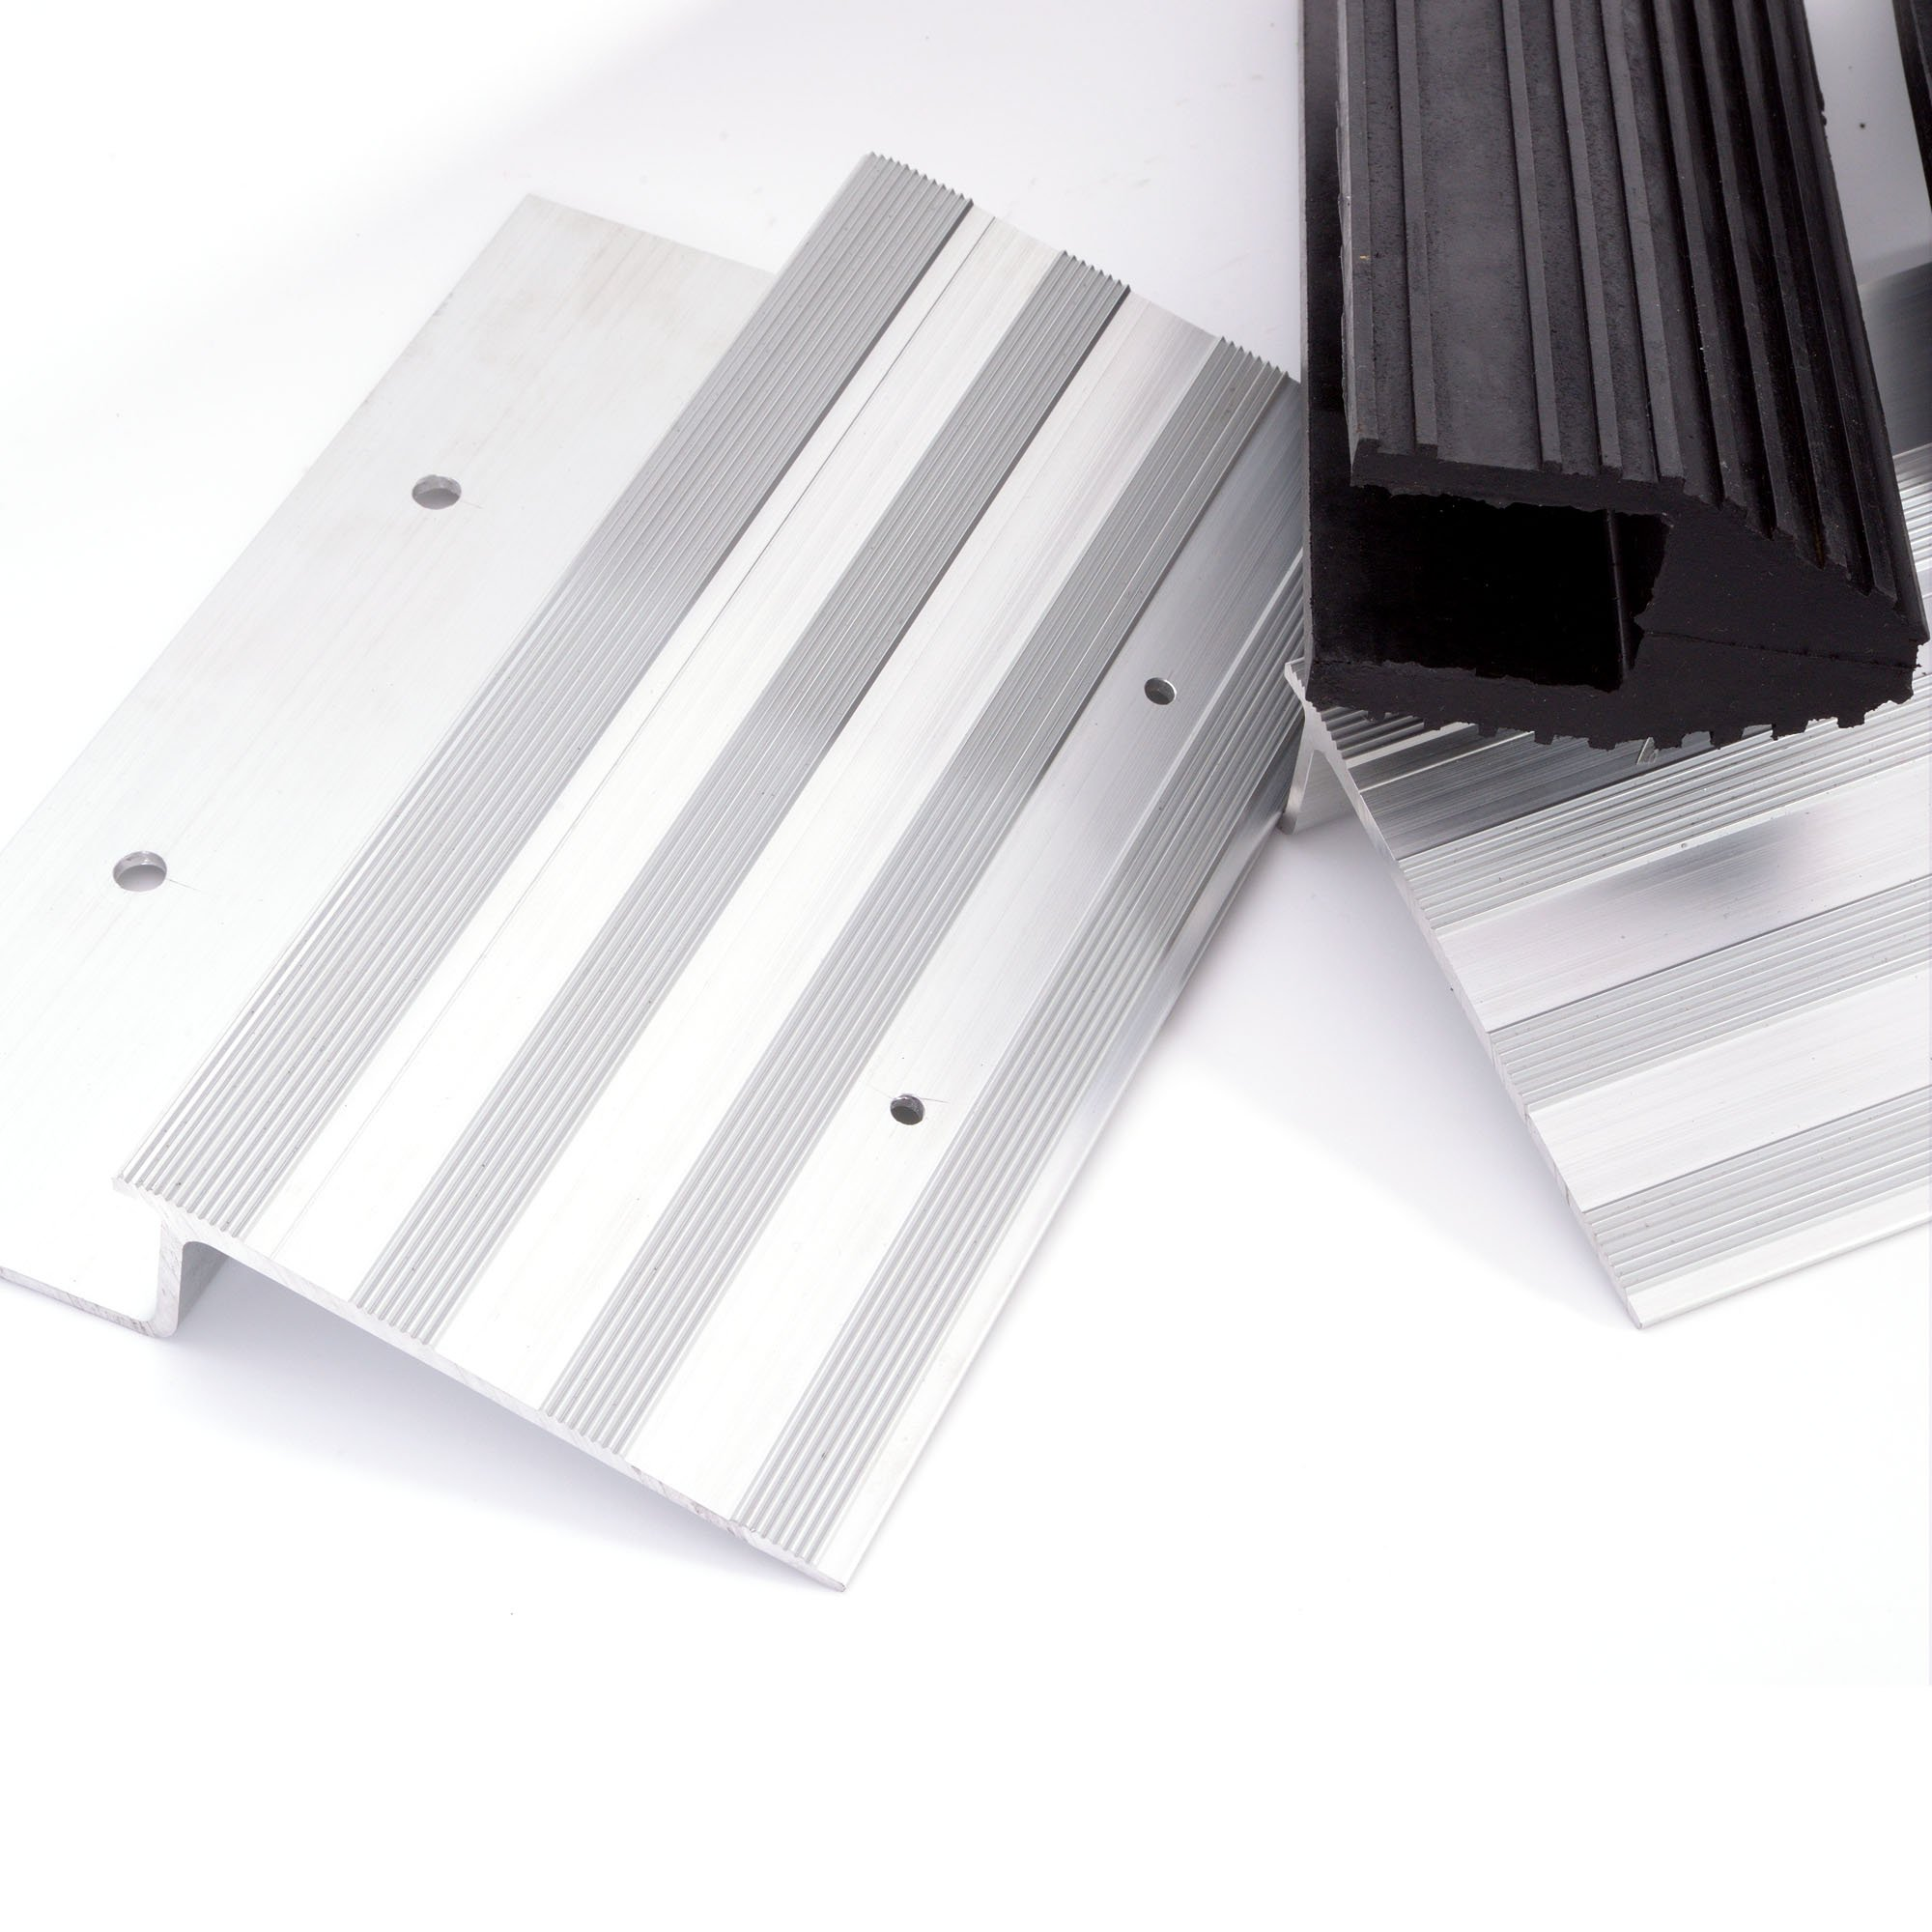 Wide Truck Ramps - 12-inch Aluminum Quick-Ramp Kit by AFA Tooling by AFA Tooling Approved for Automotive (Image #6)